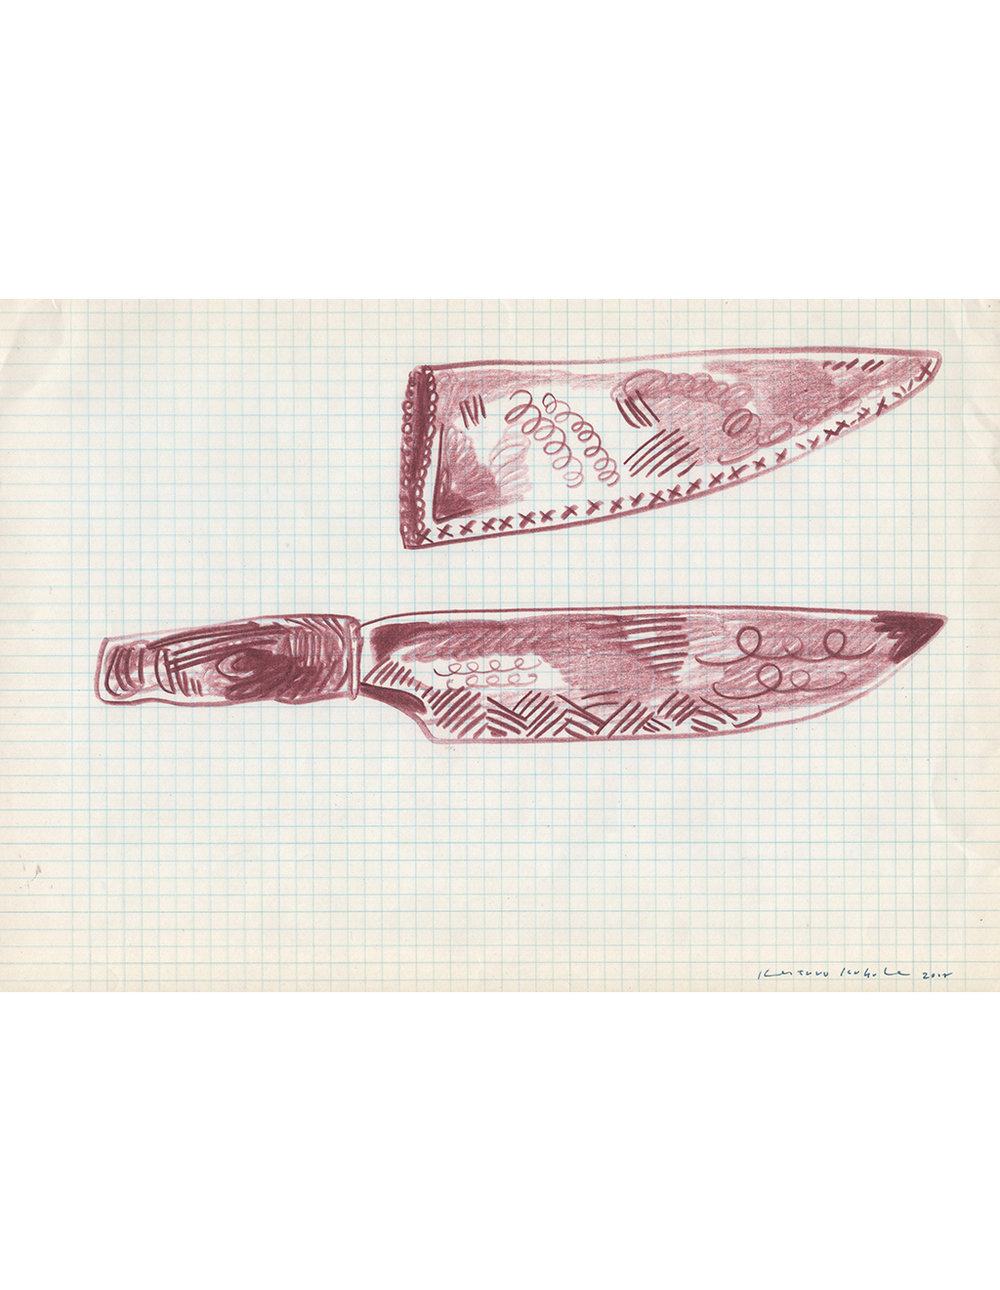 Drawing - Knives,   2018  29.5cm x 21cm  Colour pencils on paper